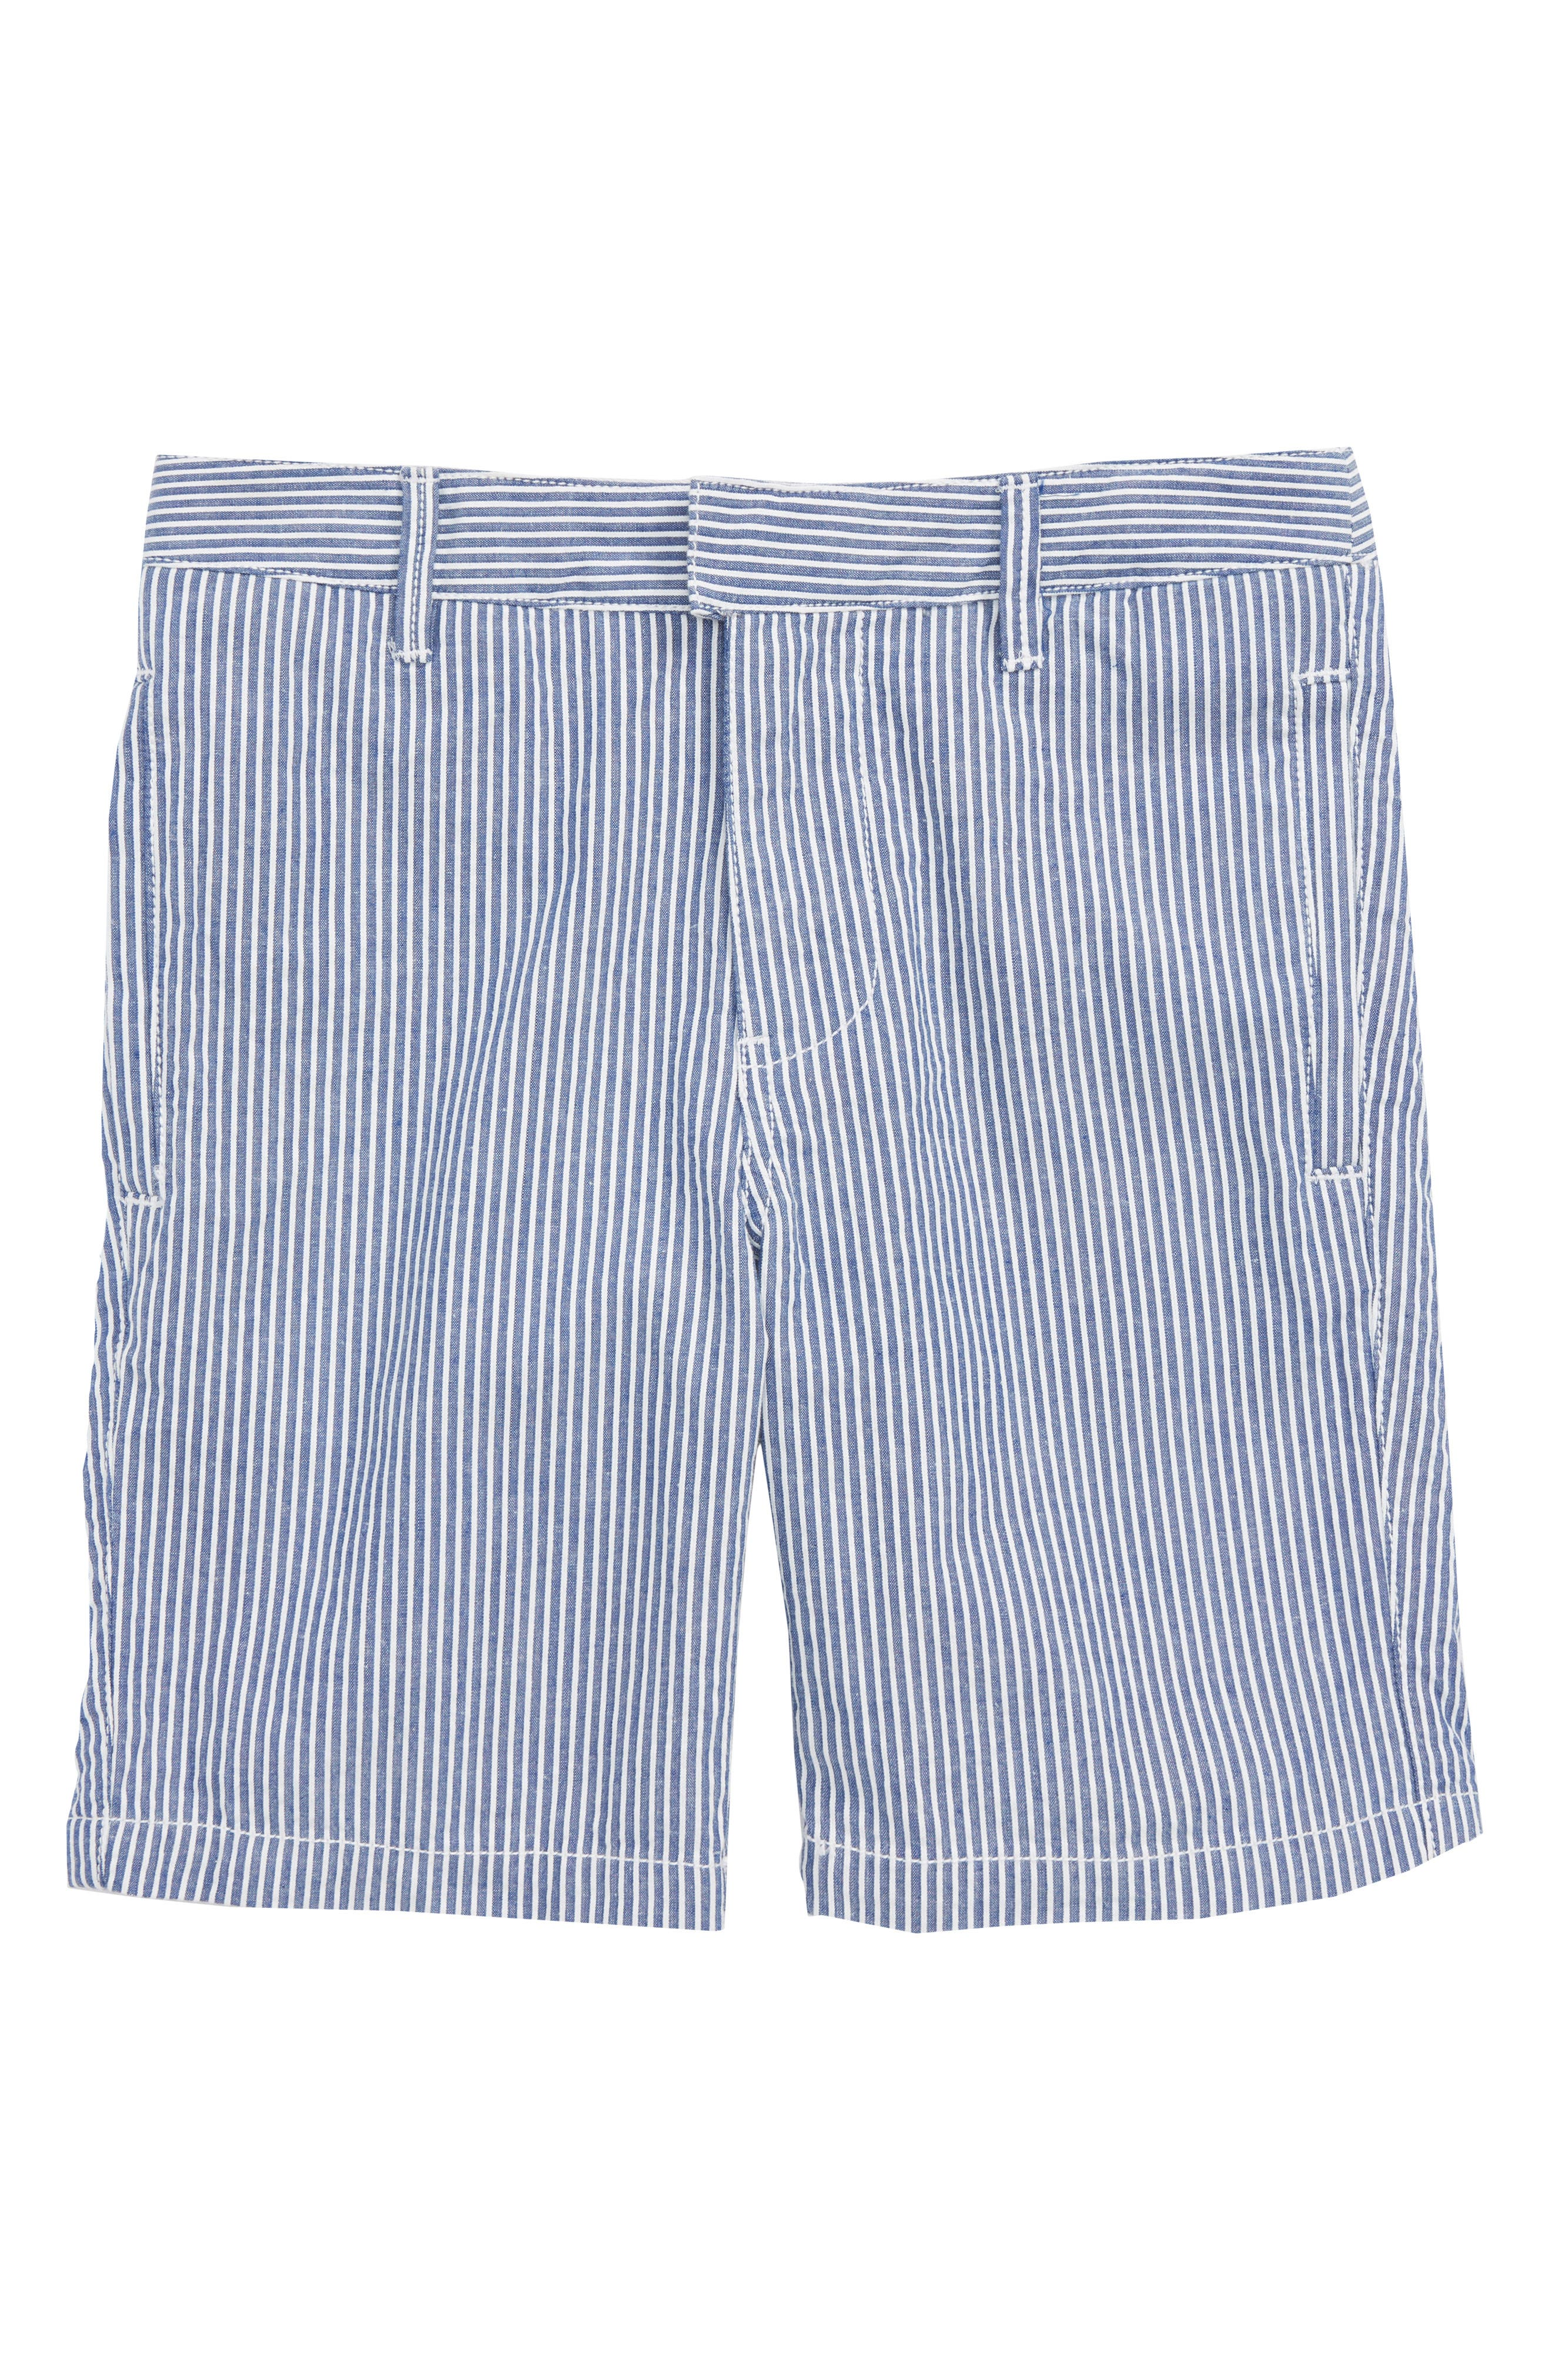 Smart Stripe Shorts,                         Main,                         color, 454